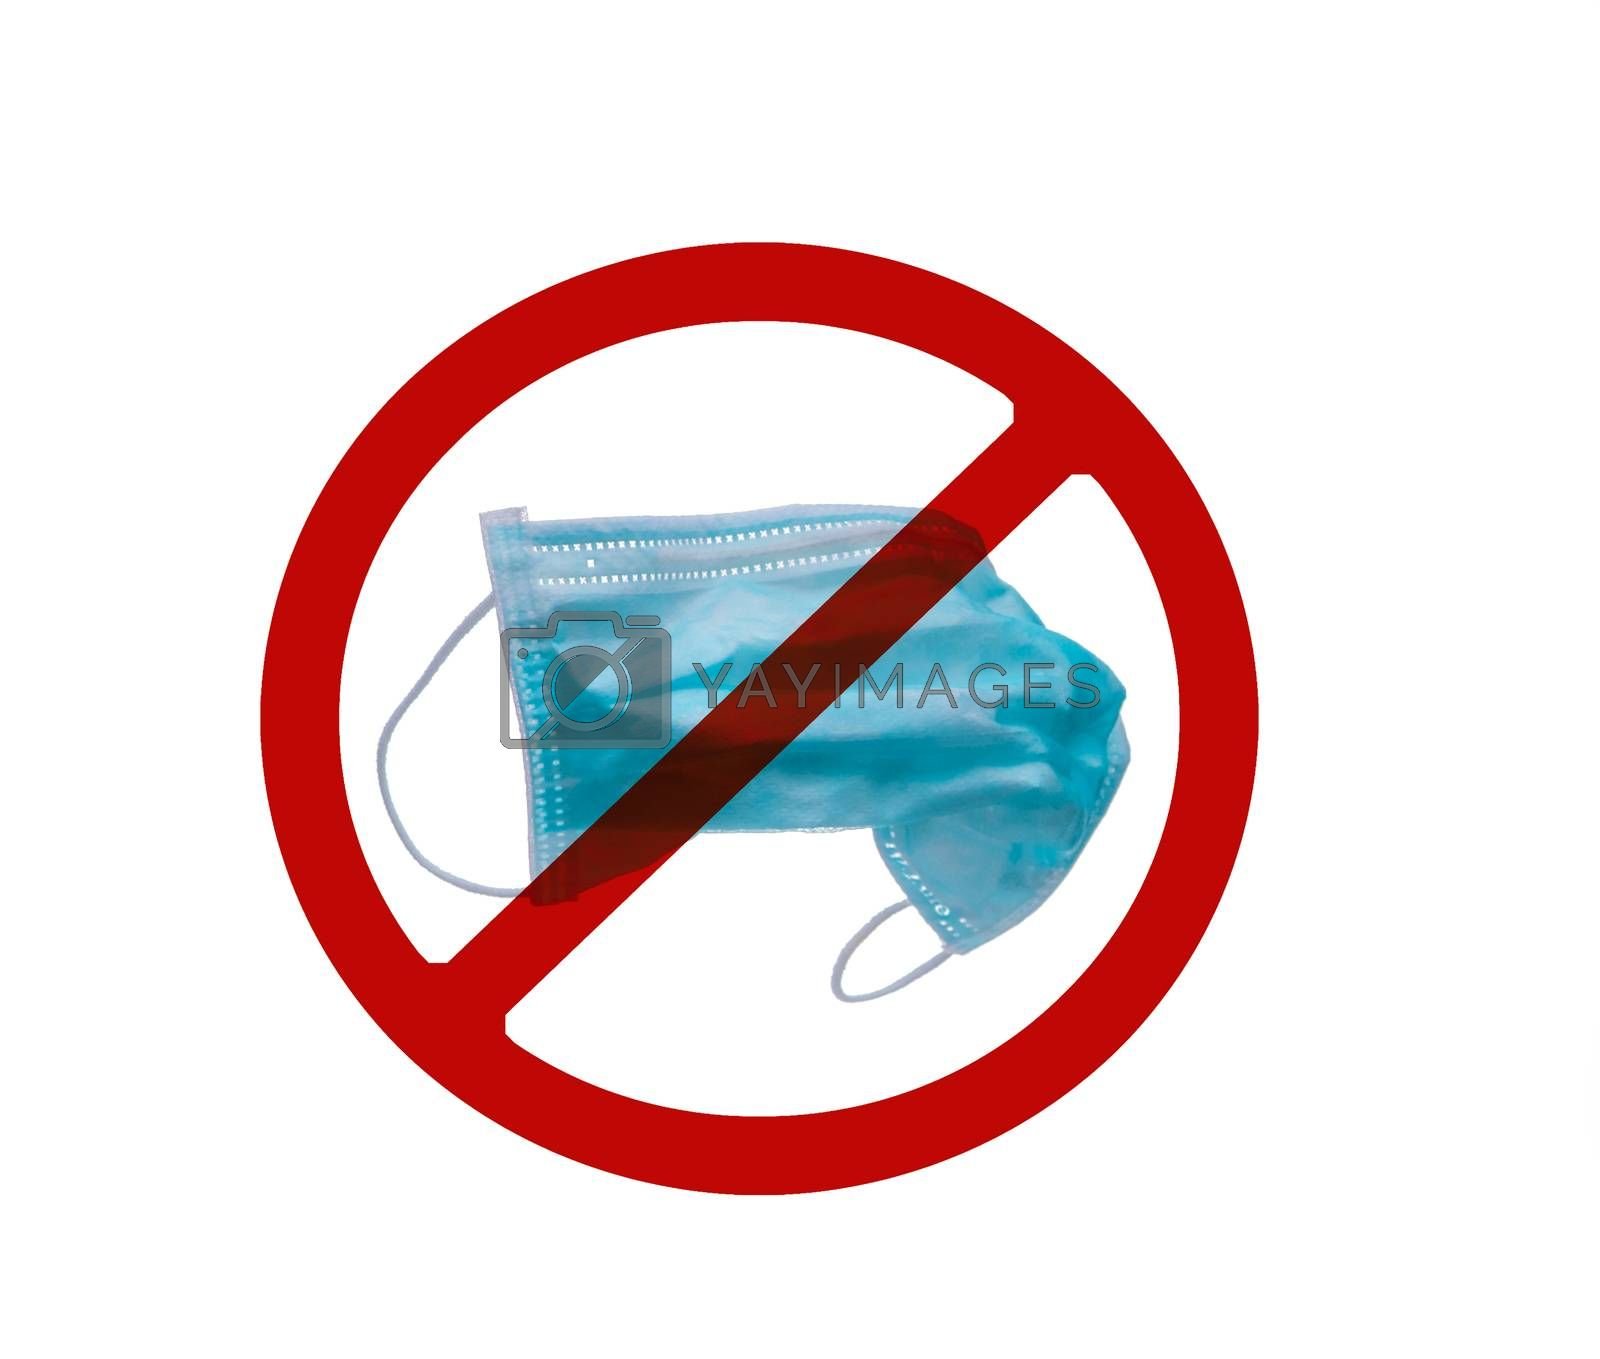 Used blue surgical face mask in red forbidden symbol on white background. No discard used medical face mask in this area. Medical waste management with hygienic rule in hospital and community.